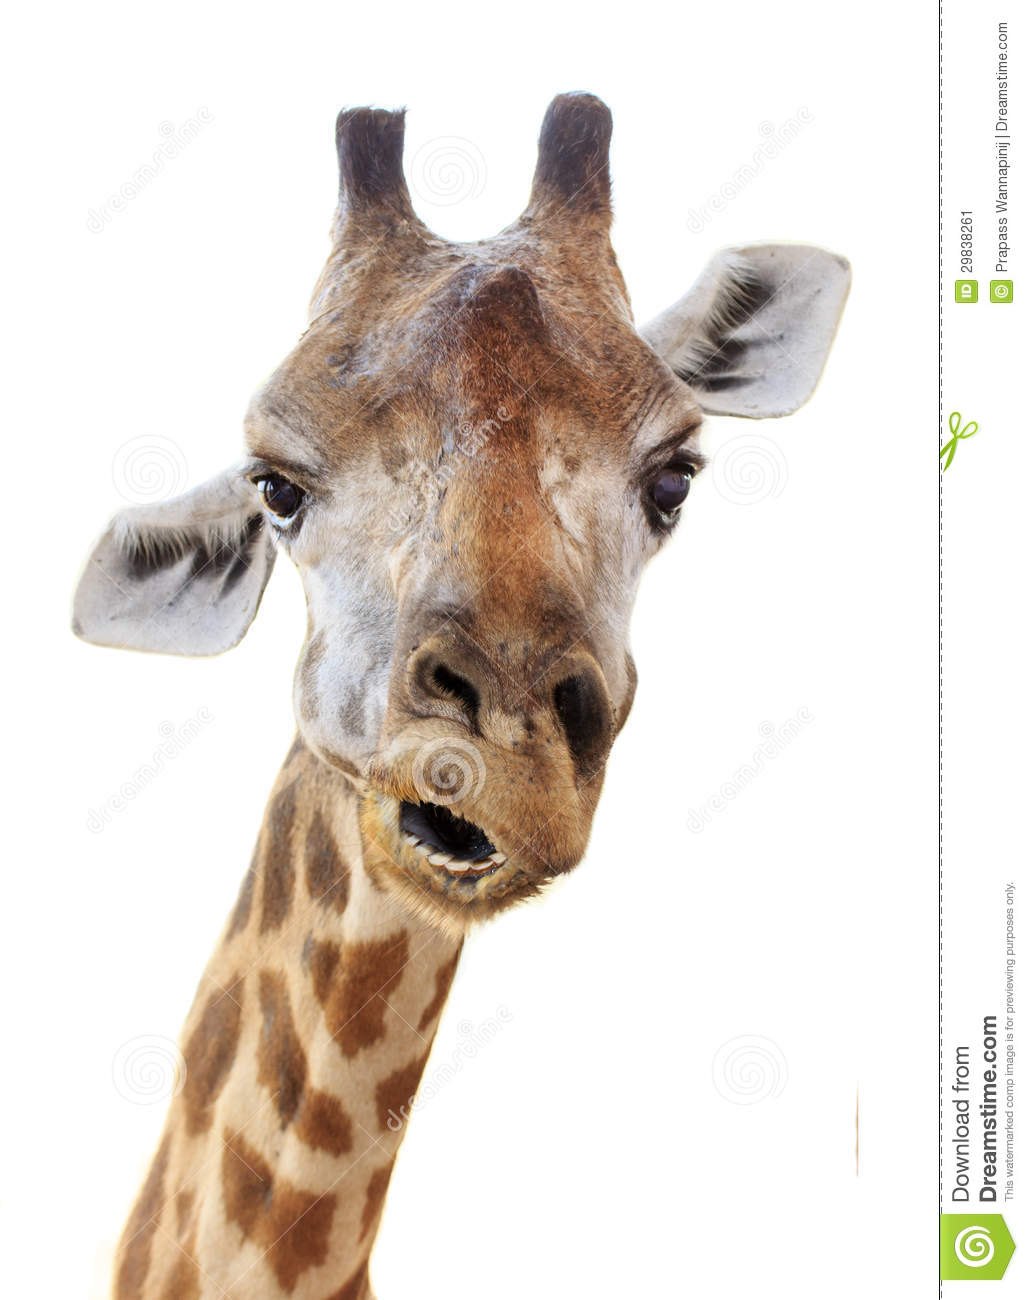 giraffe head white background - photo #20